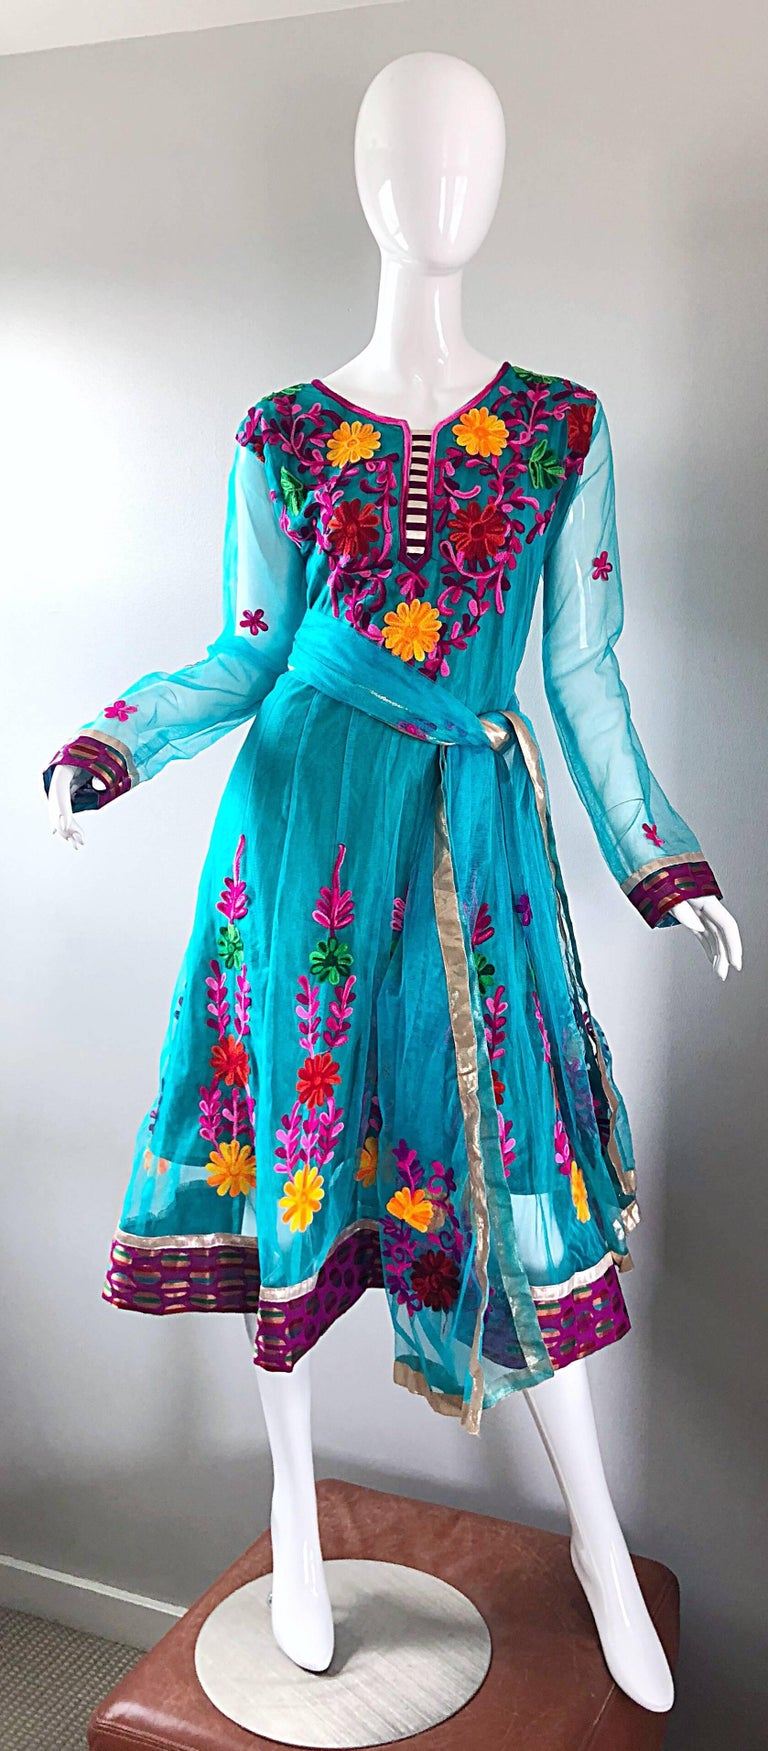 Gorgeous 1970s turquoise blue colorful embrodiered Indian boho kurta dress and sash belt! Features vibrant colored hand embrodiered flowers in fuchsia, purple, red, marigold yellow, pink, and green throughout. Gauze overlay with semi-sheer long